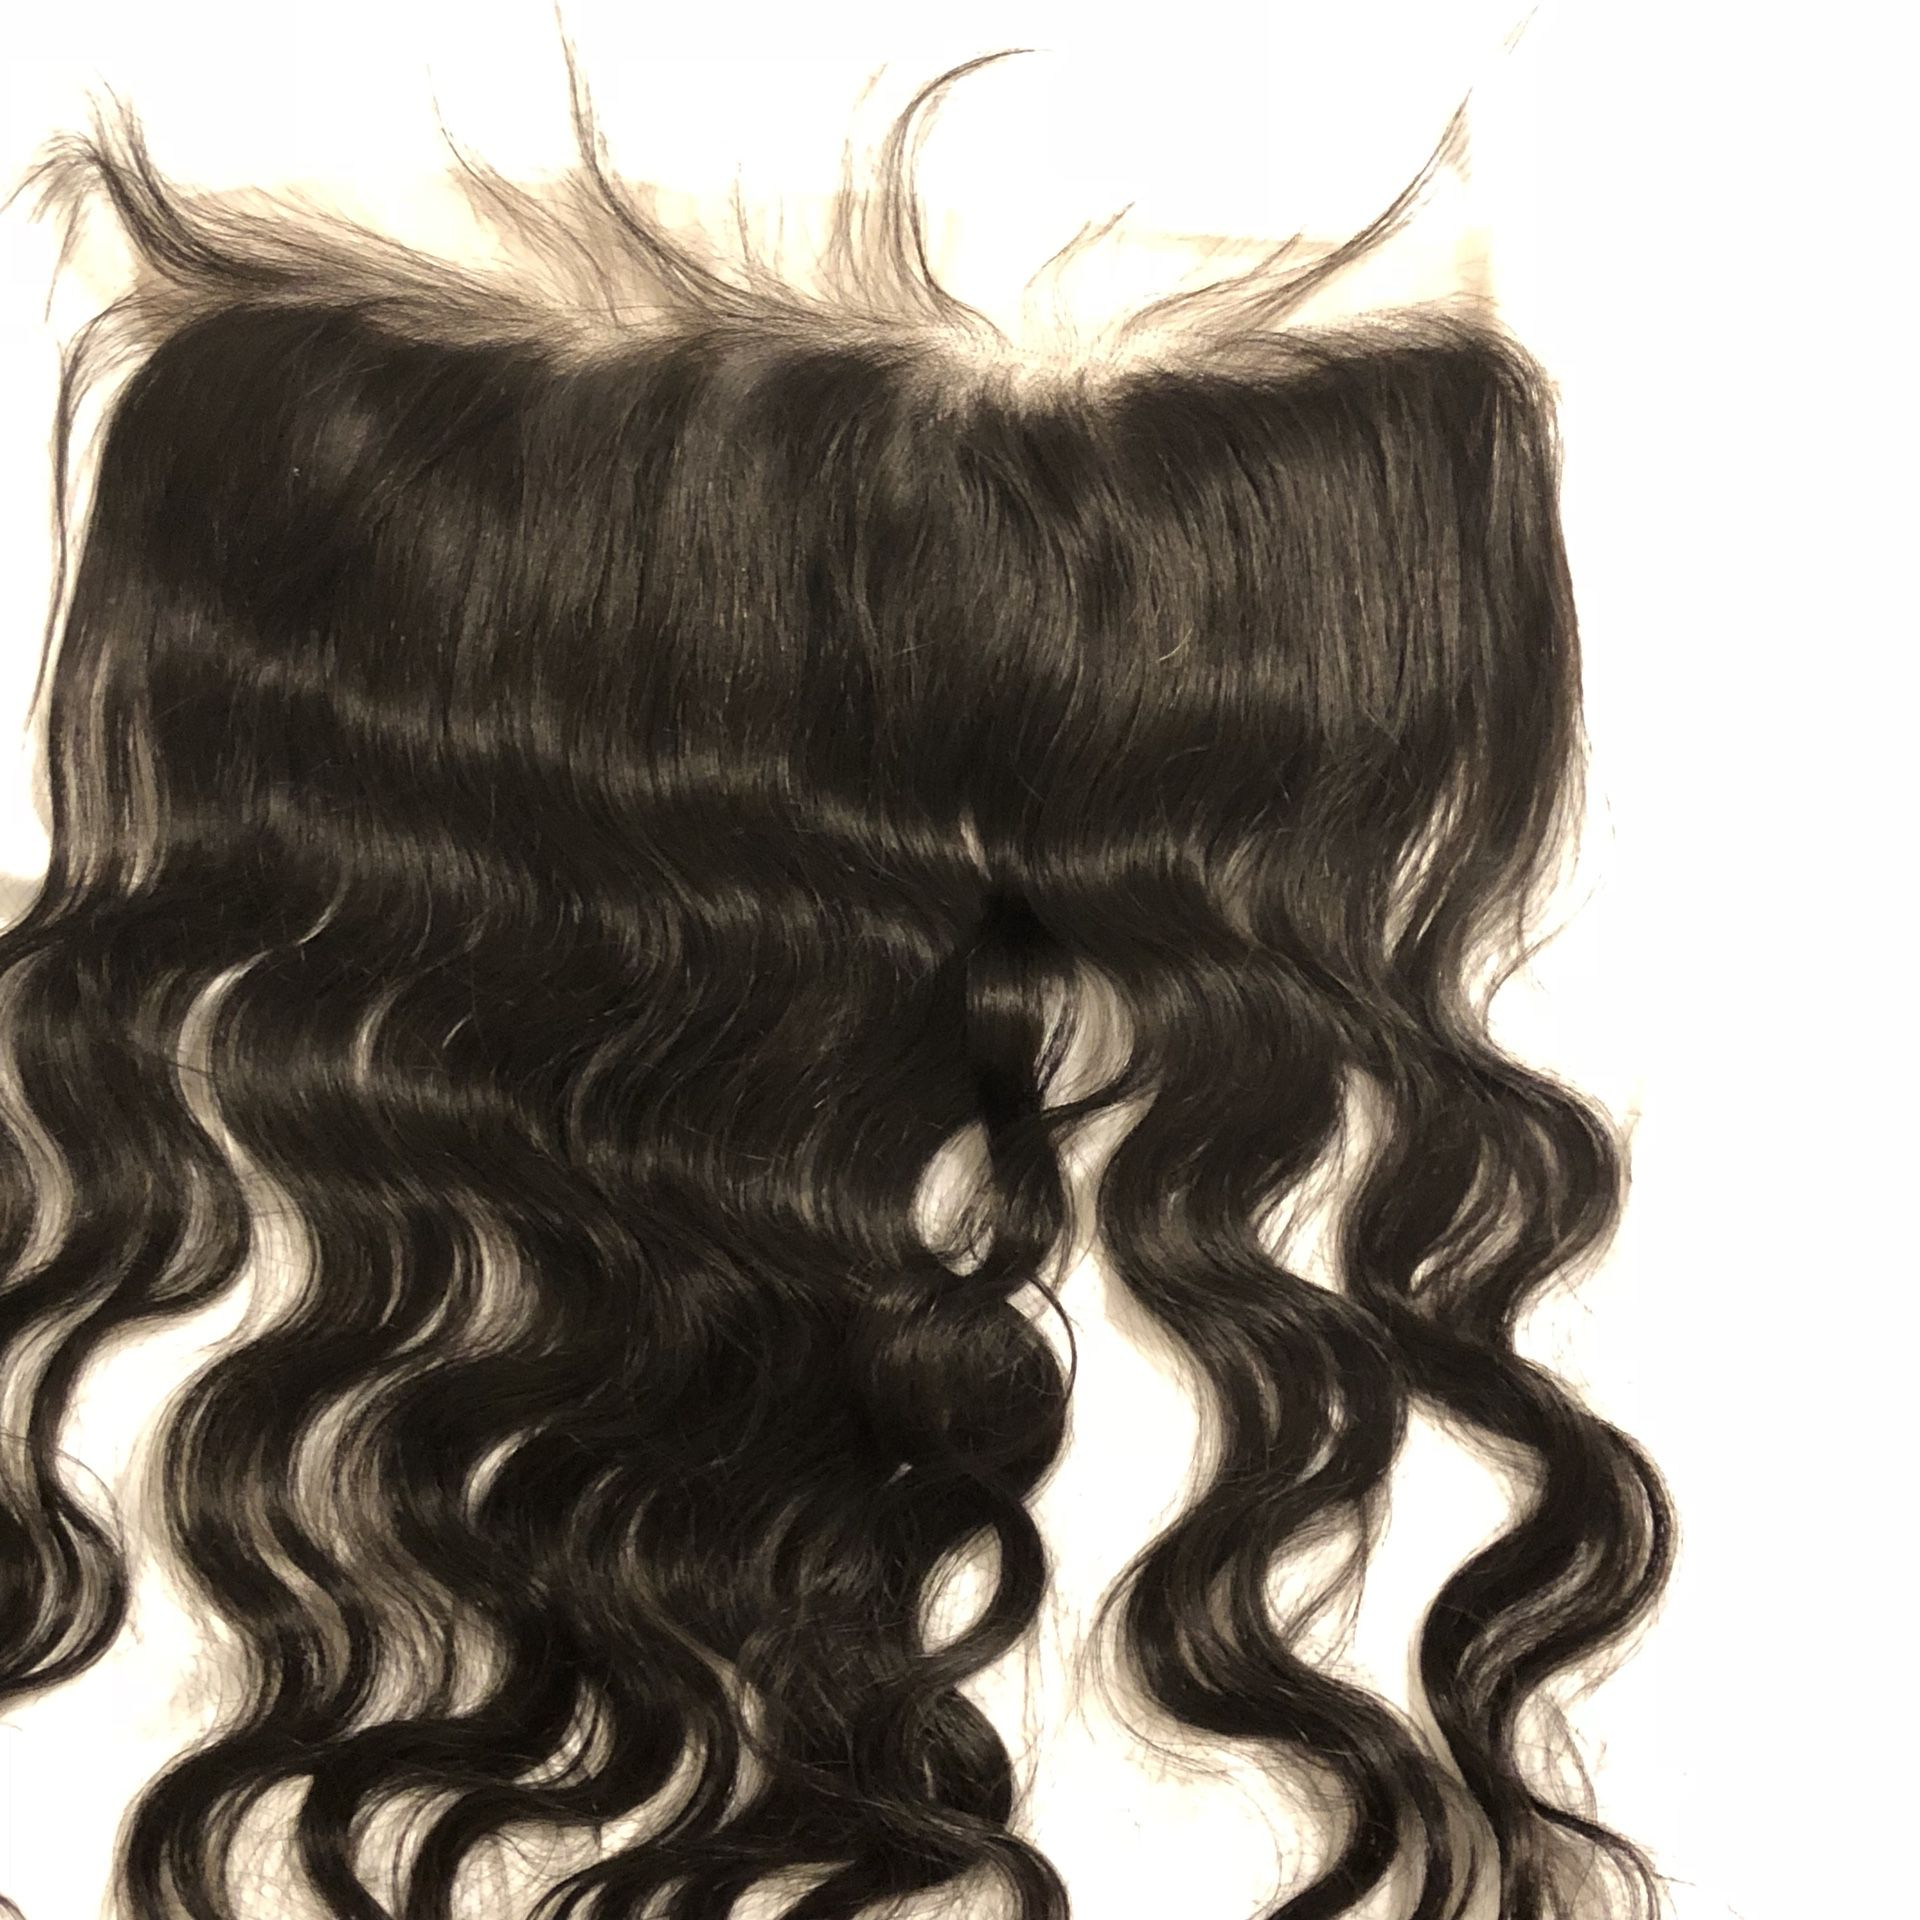 Frontals on sale